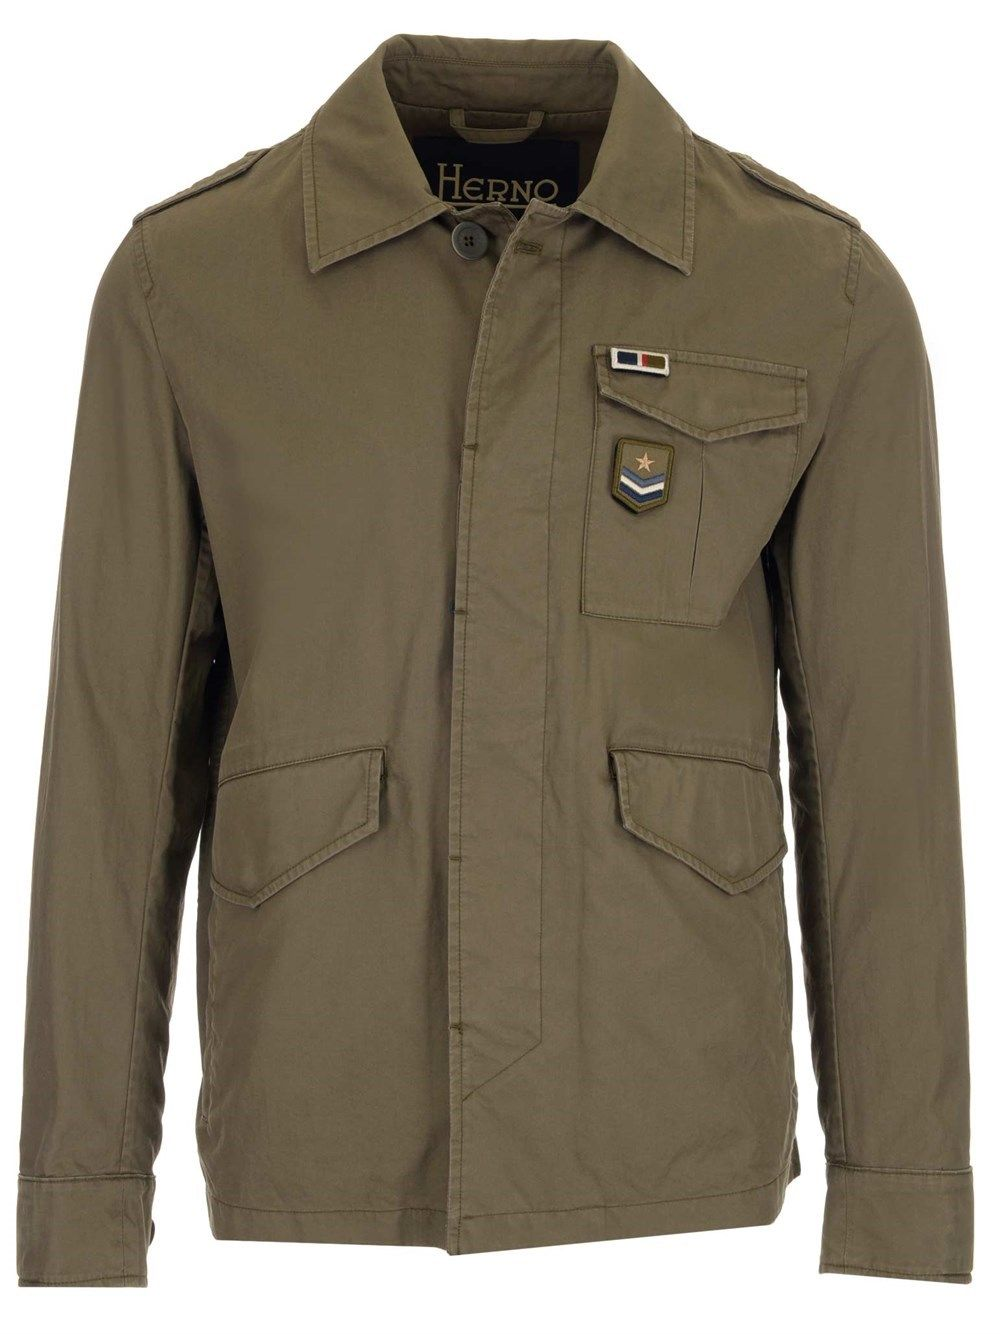 Herno HERNO MEN'S FI0072U132117730 GREEN OTHER MATERIALS OUTERWEAR JACKET